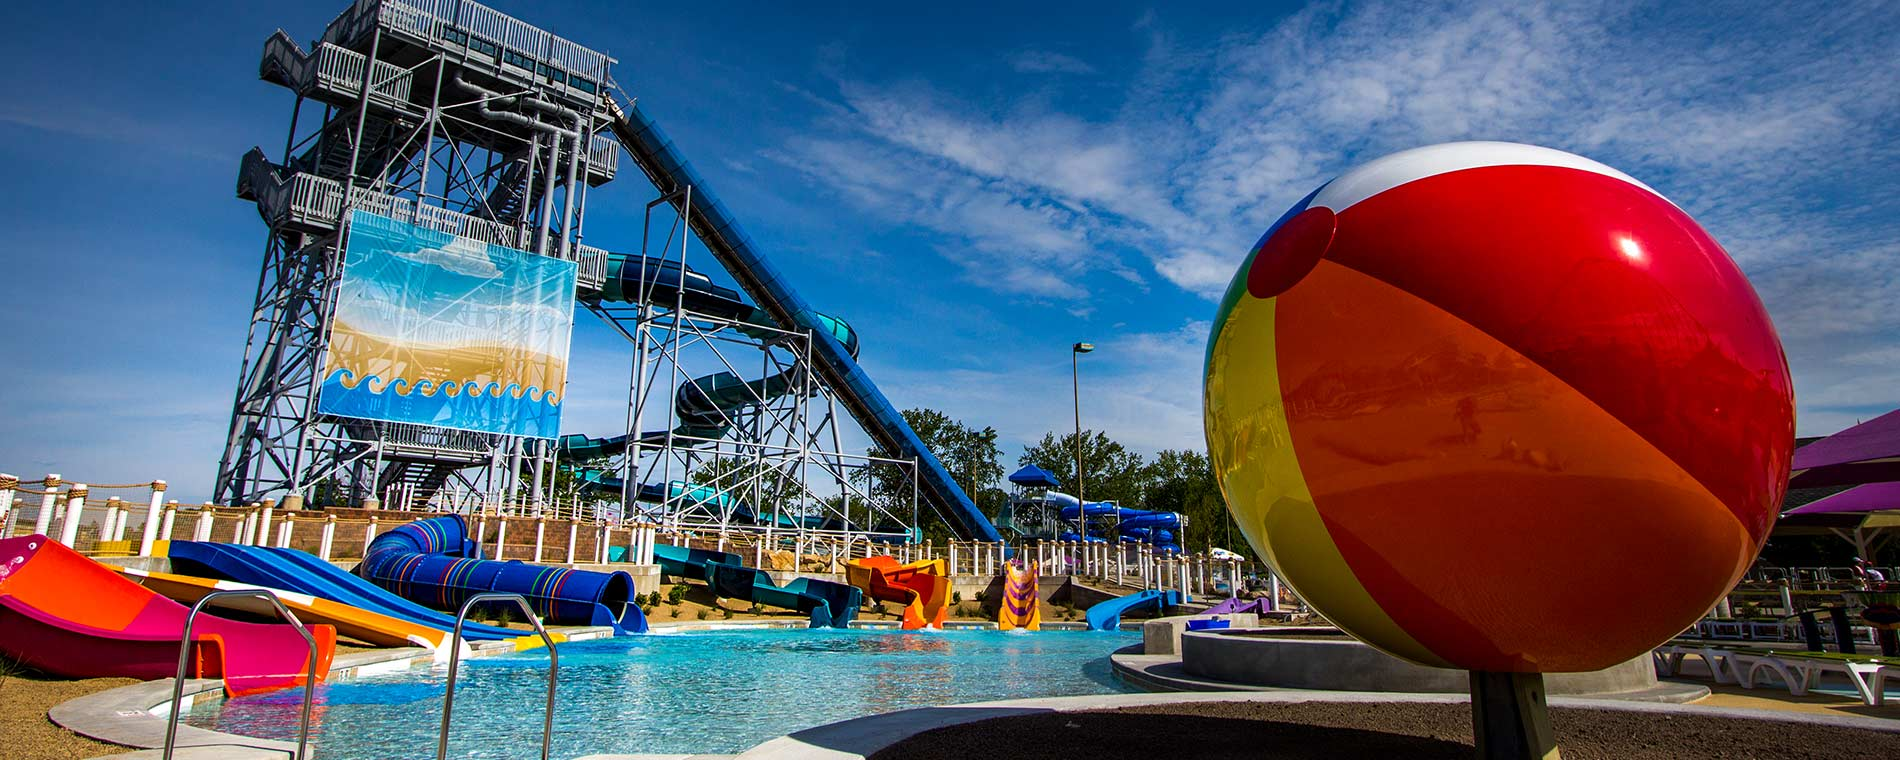 Lakeslide Landing at Cedar Point Shores Waterpark